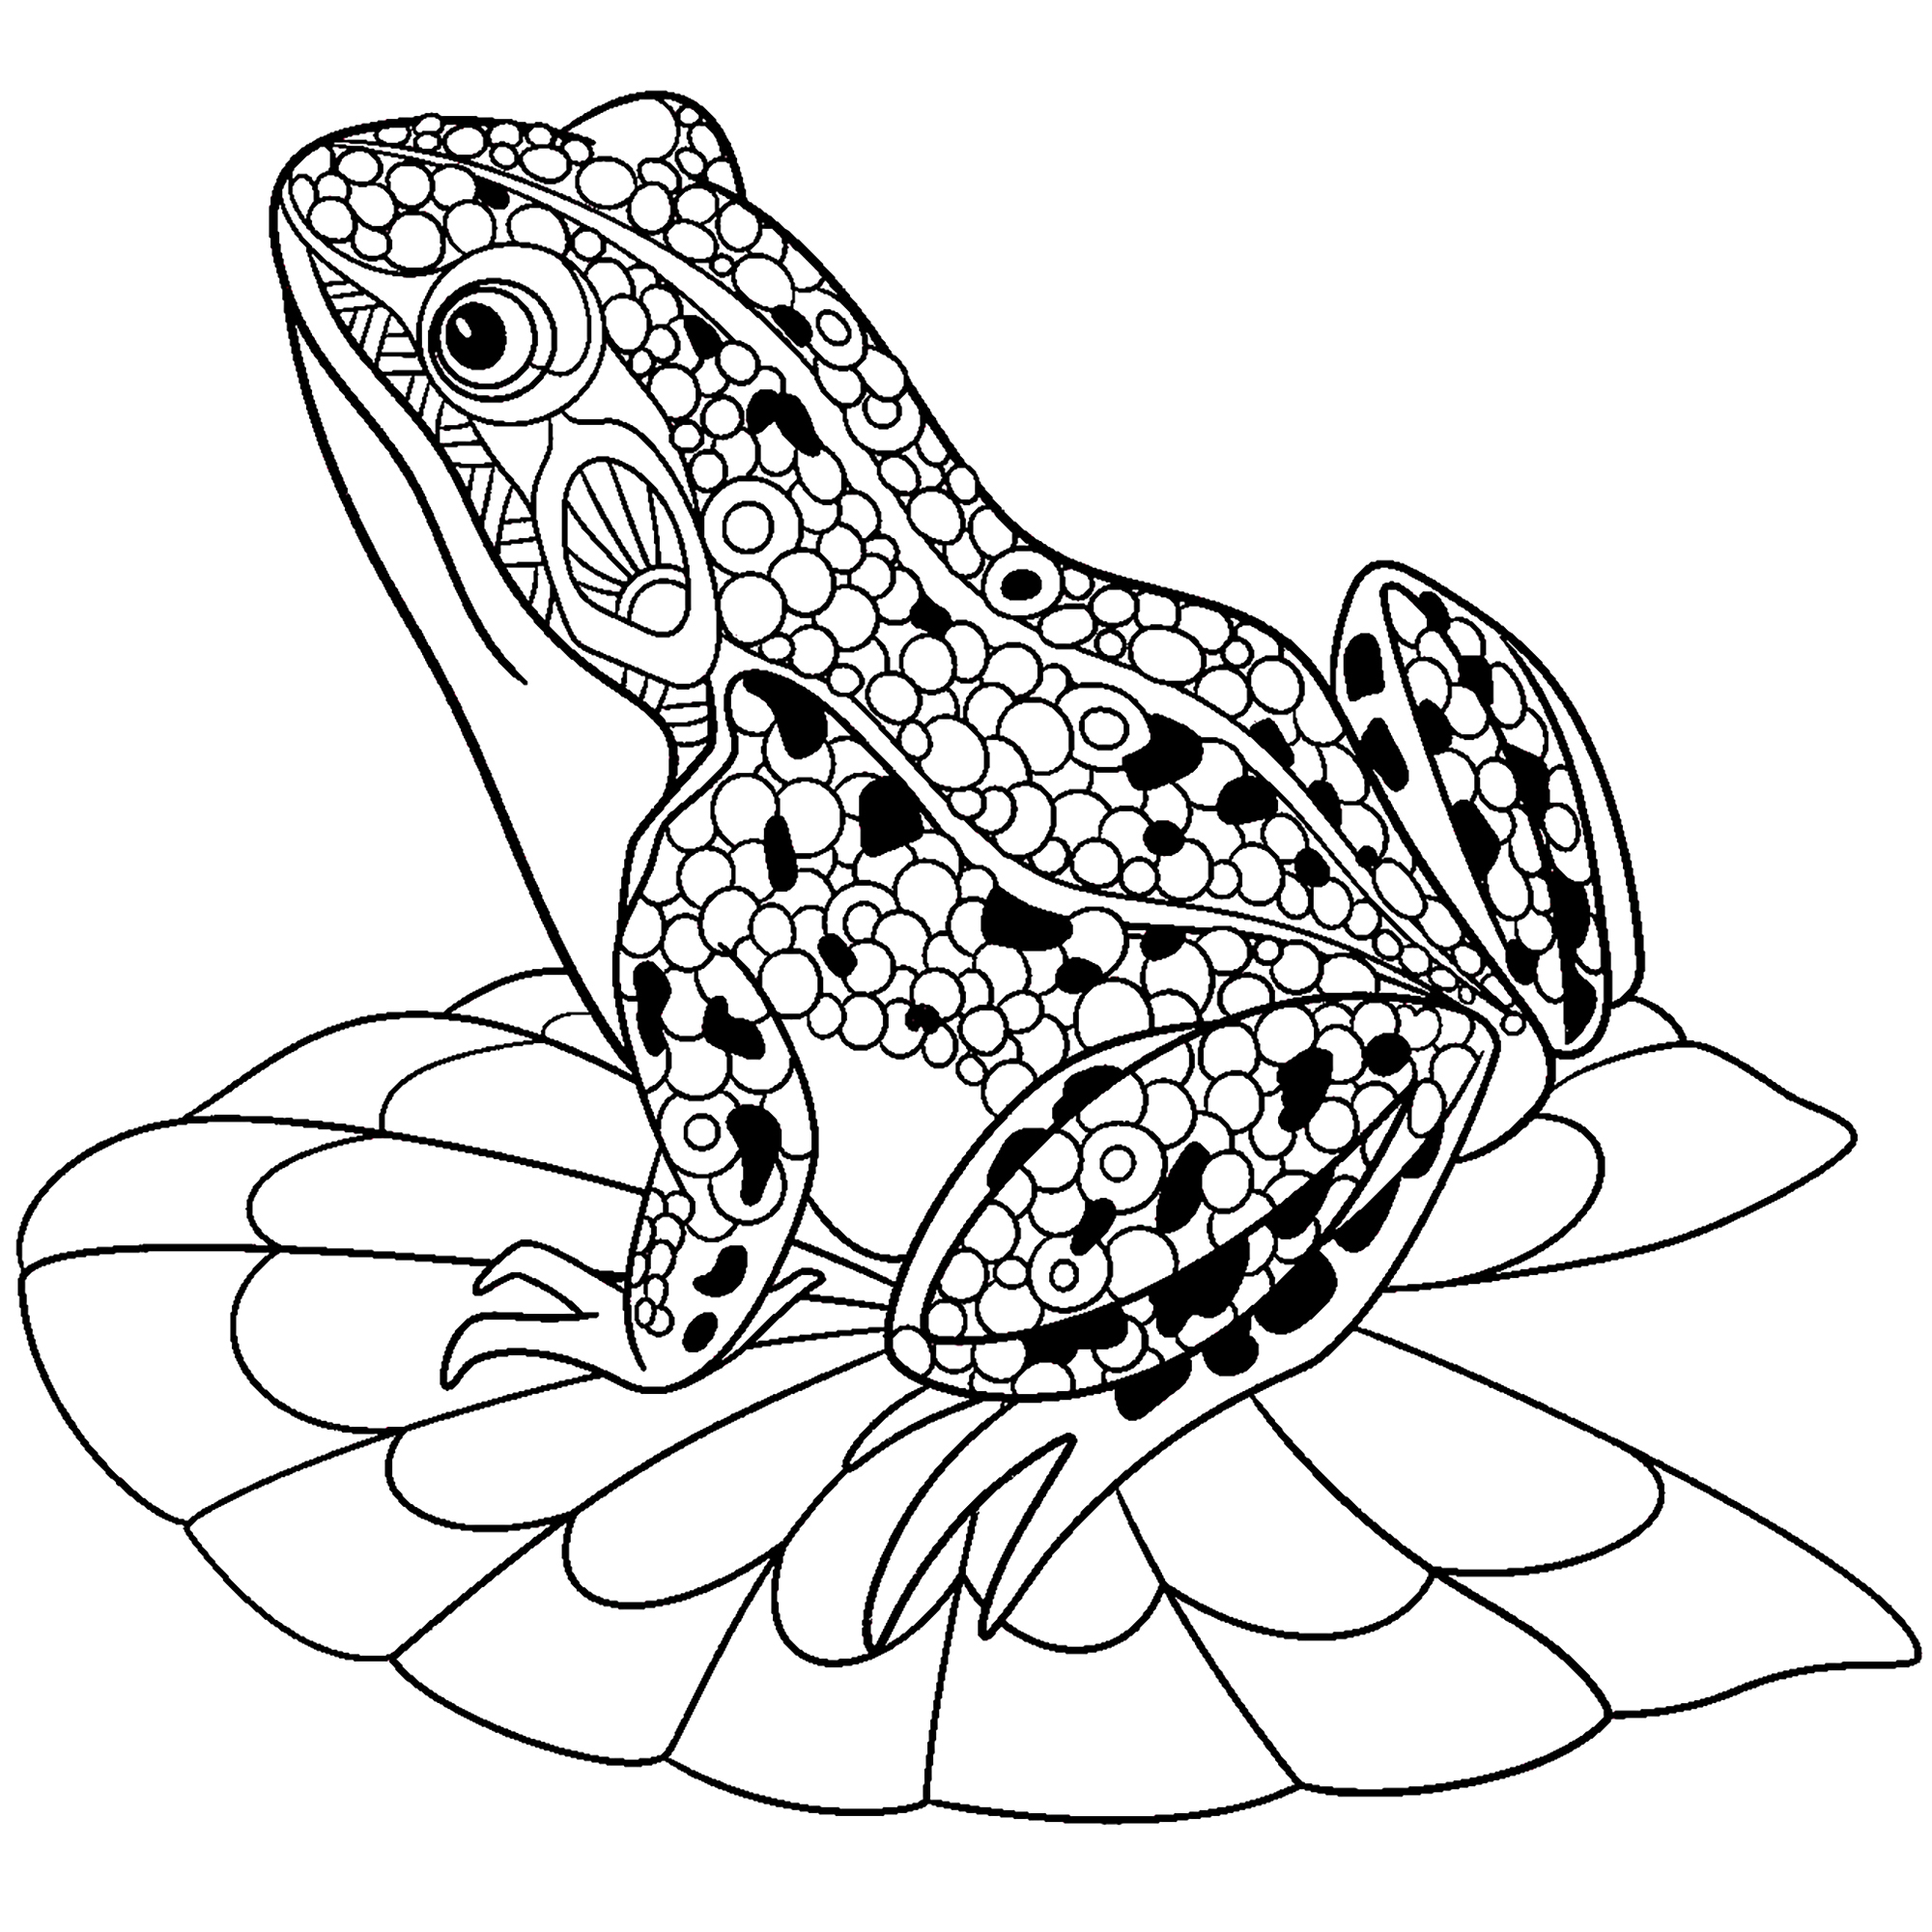 water animal coloring pages cute frog on water lily leaf frogs adult coloring pages pages coloring water animal